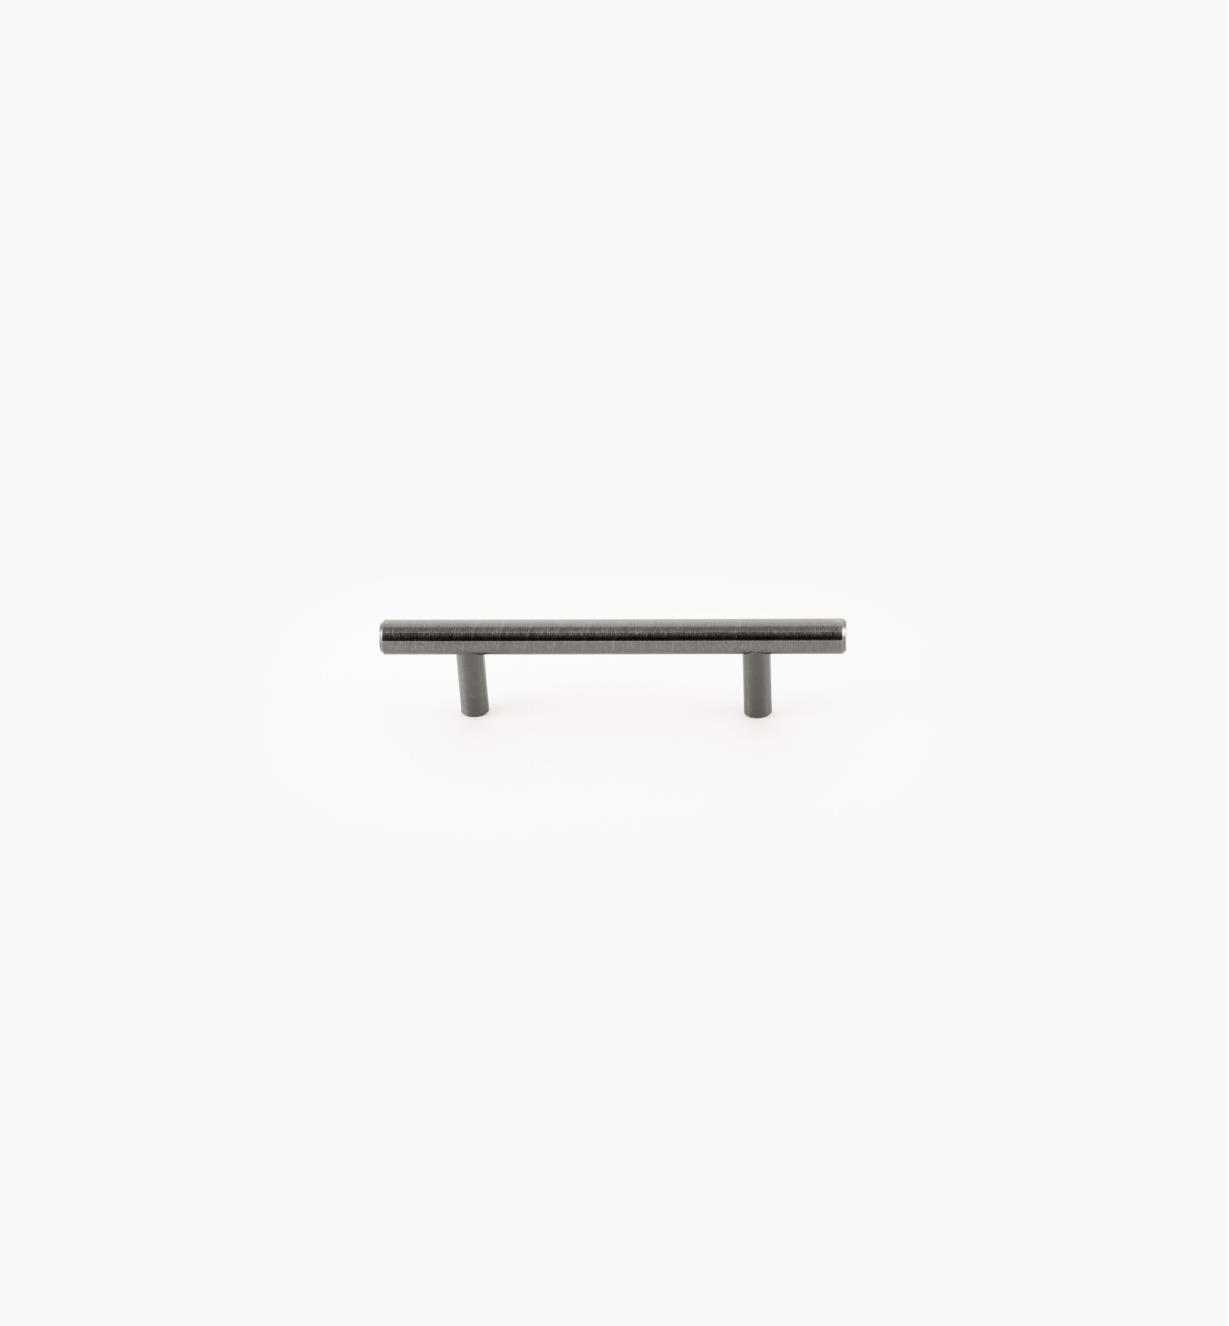 02A1481 - Bar Gunmetal 96mm (156mm) Pull, each